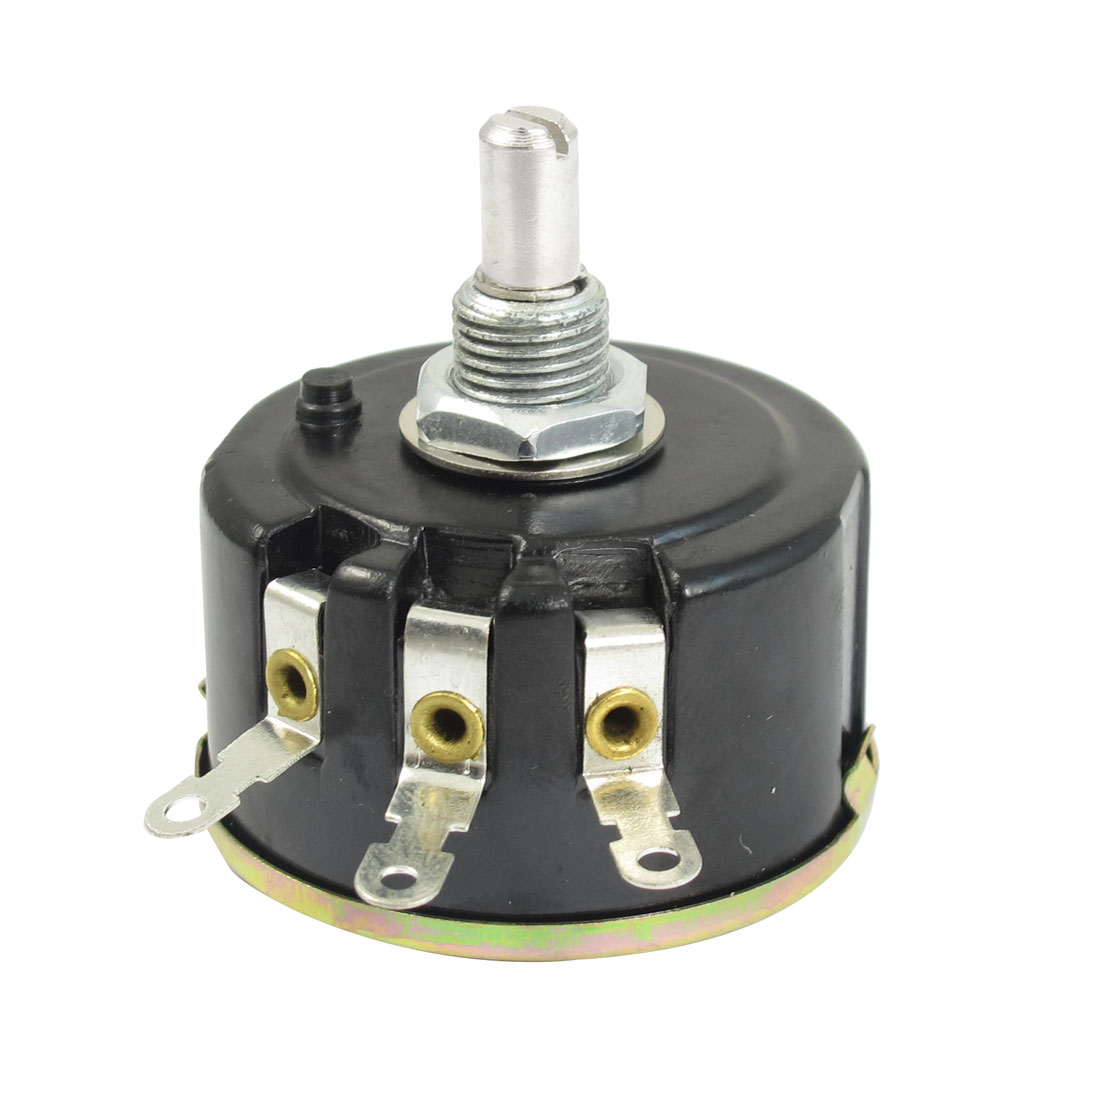 WX050 1K ohm 5W Watt 6mm Round Shaft Rotary Wire Wound Potentiometer